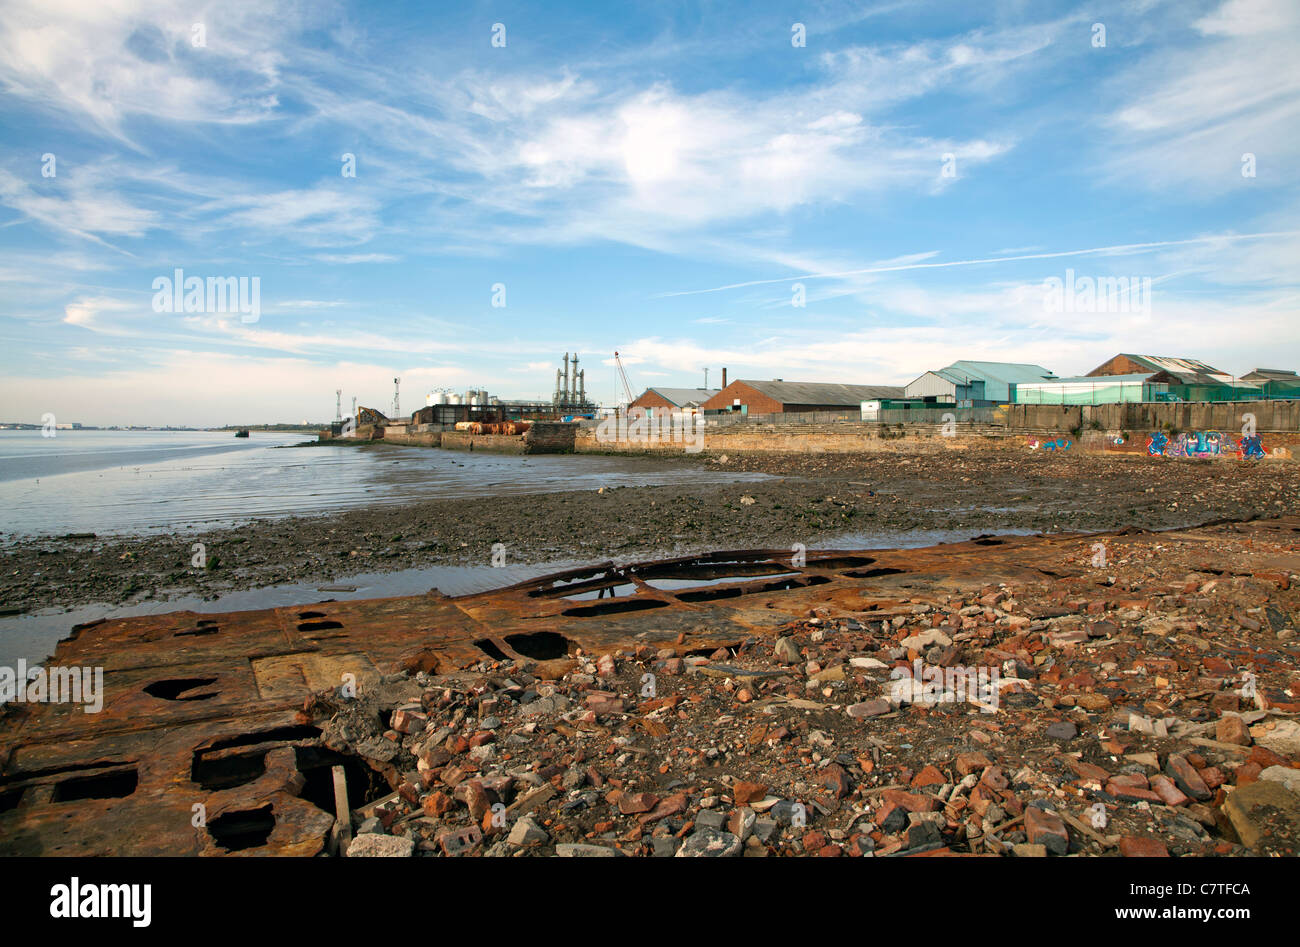 Garston Docks is a group of docks on the River Mersey at Garston, Liverpool, England. - Stock Image